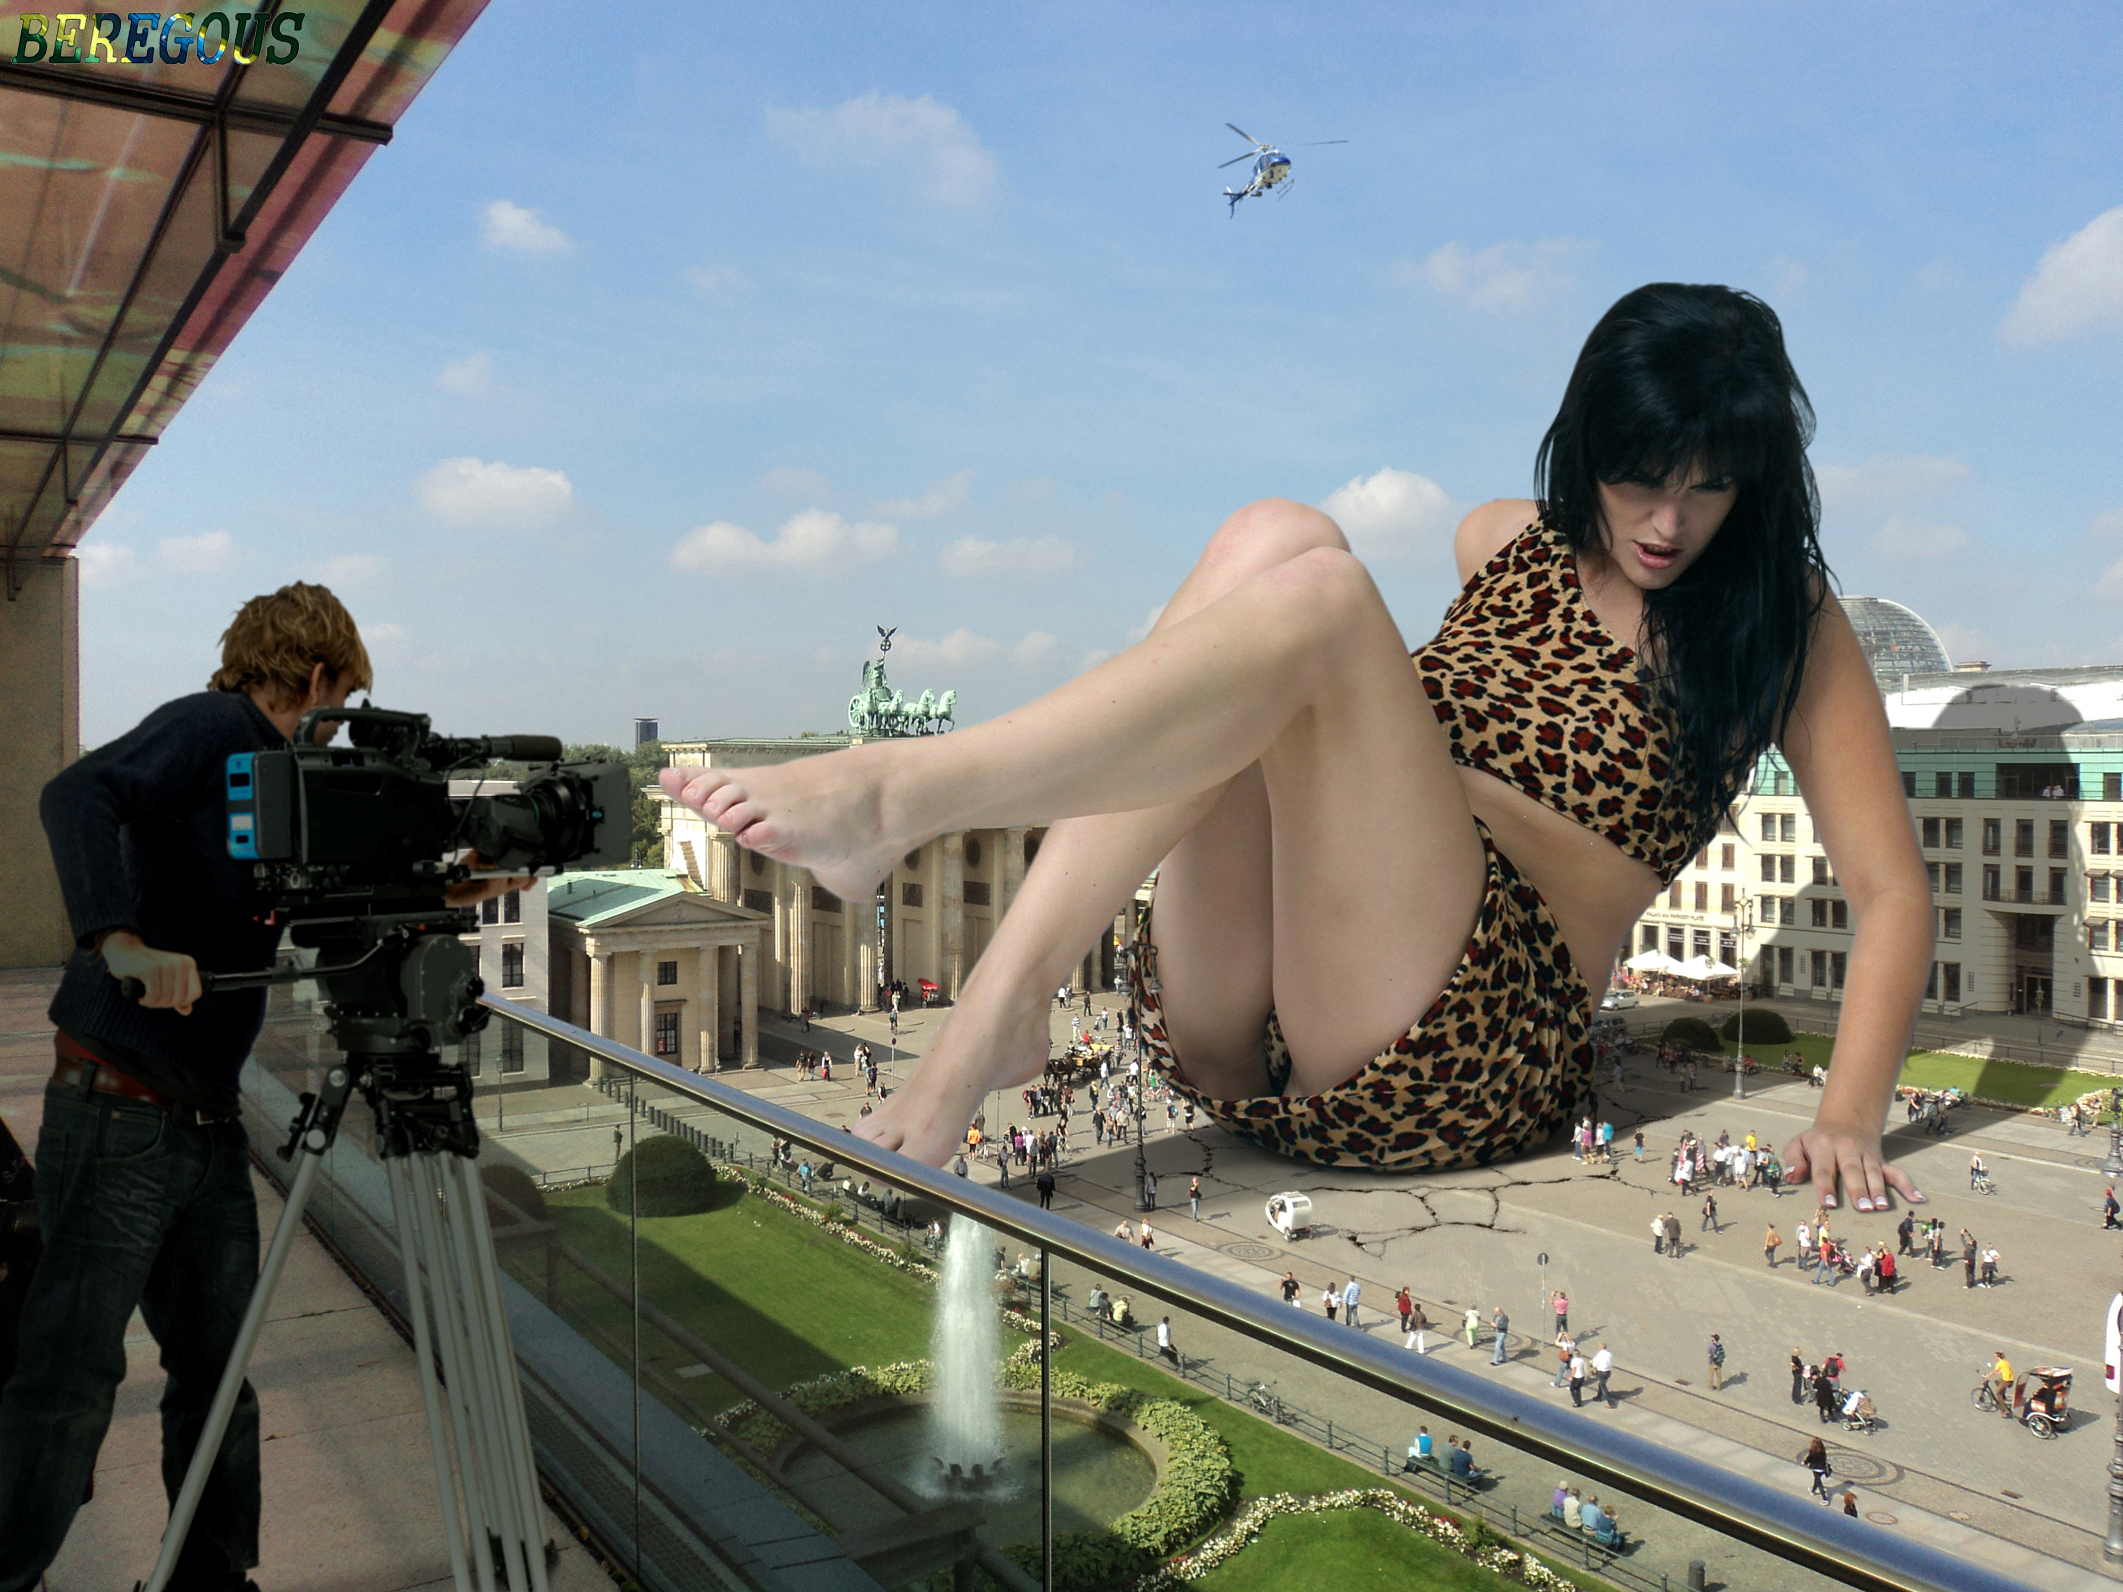 156528 - balcony barefoot beregous collage filming fountain giantess hand helicopter kerstin legs looking_down people sitting sky